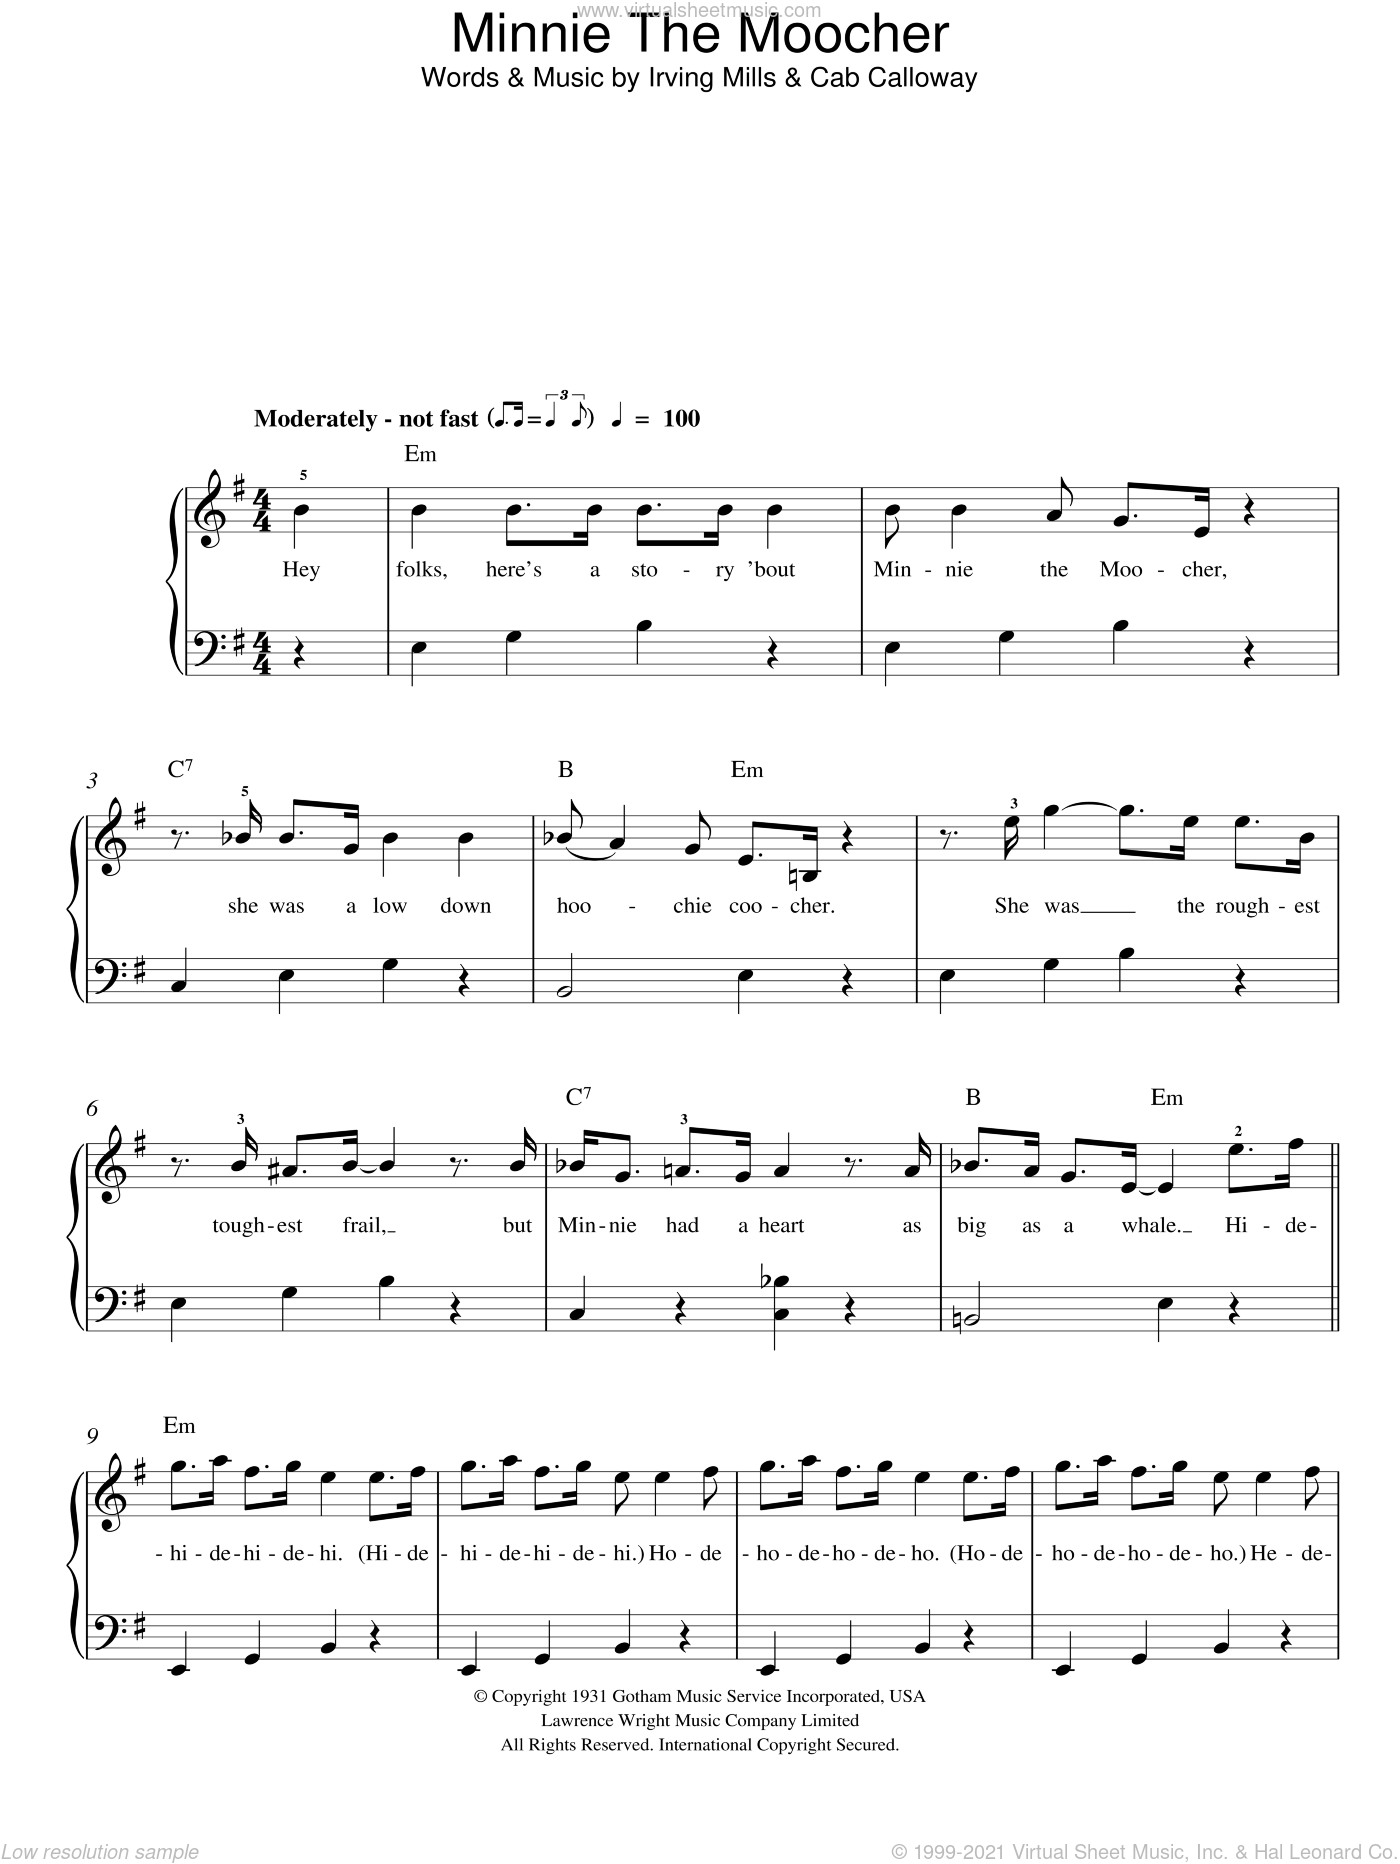 Minnie The Moocher sheet music for piano solo (chords) by Irving Mills